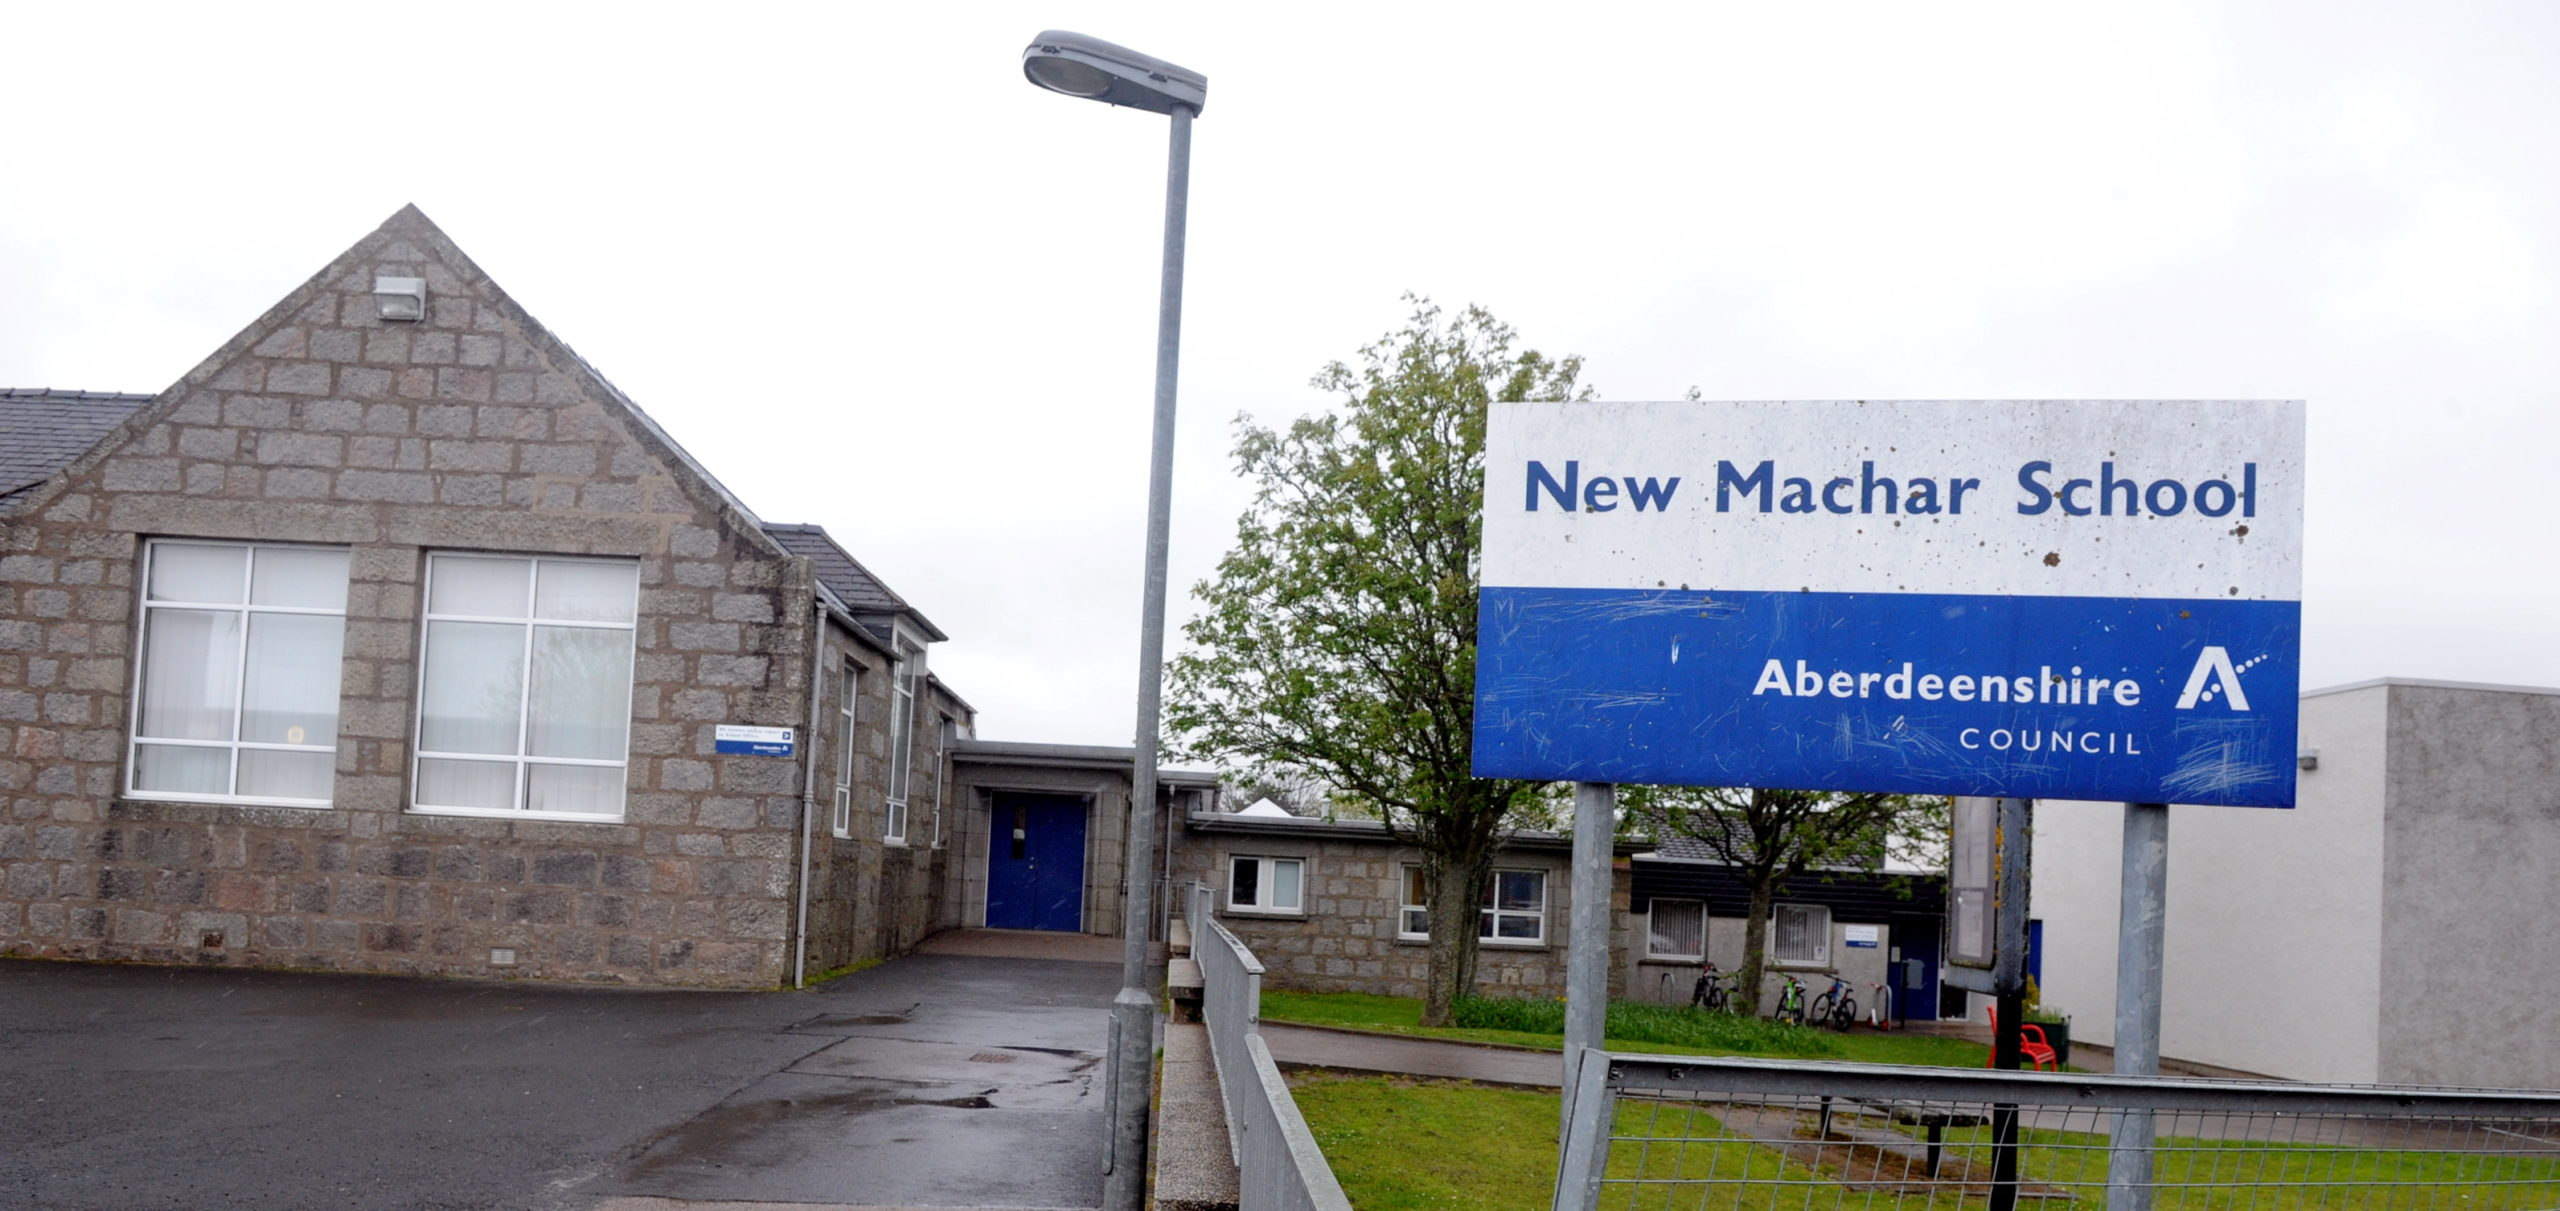 A petition concerning transport for children from Kingseat to New Machar School is to be discussed at a council meeting